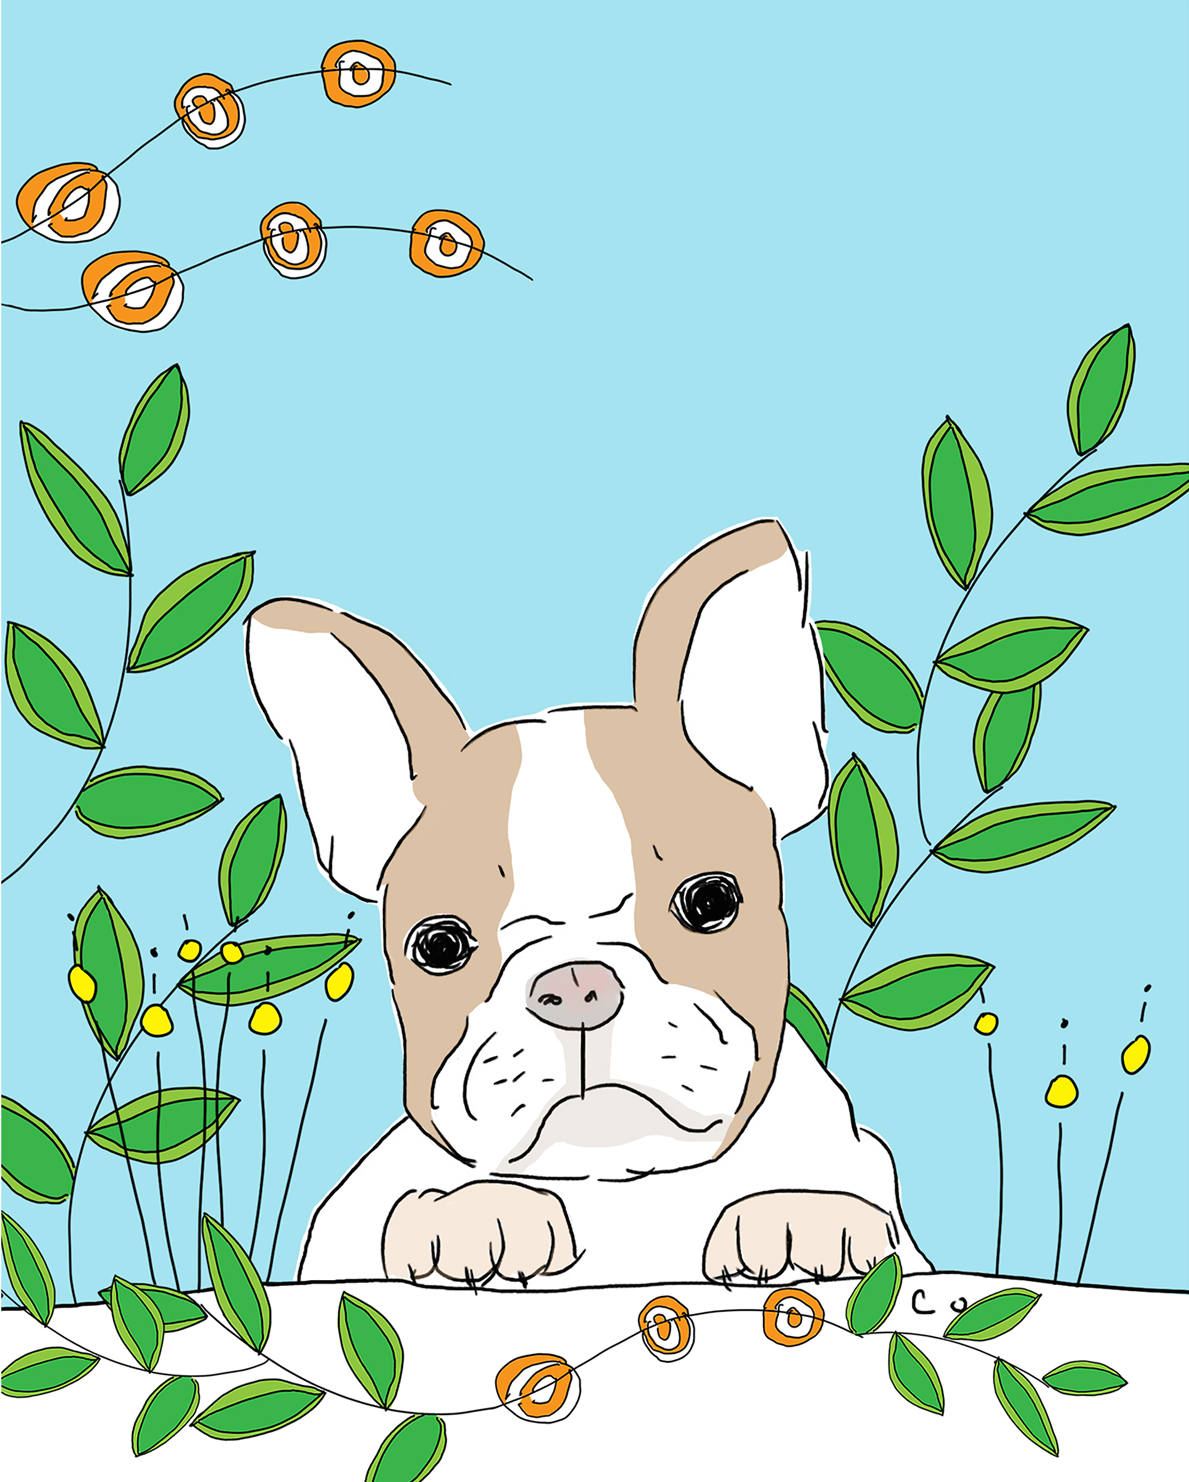 French Bulldog and Flowers illustration by Chris Olson